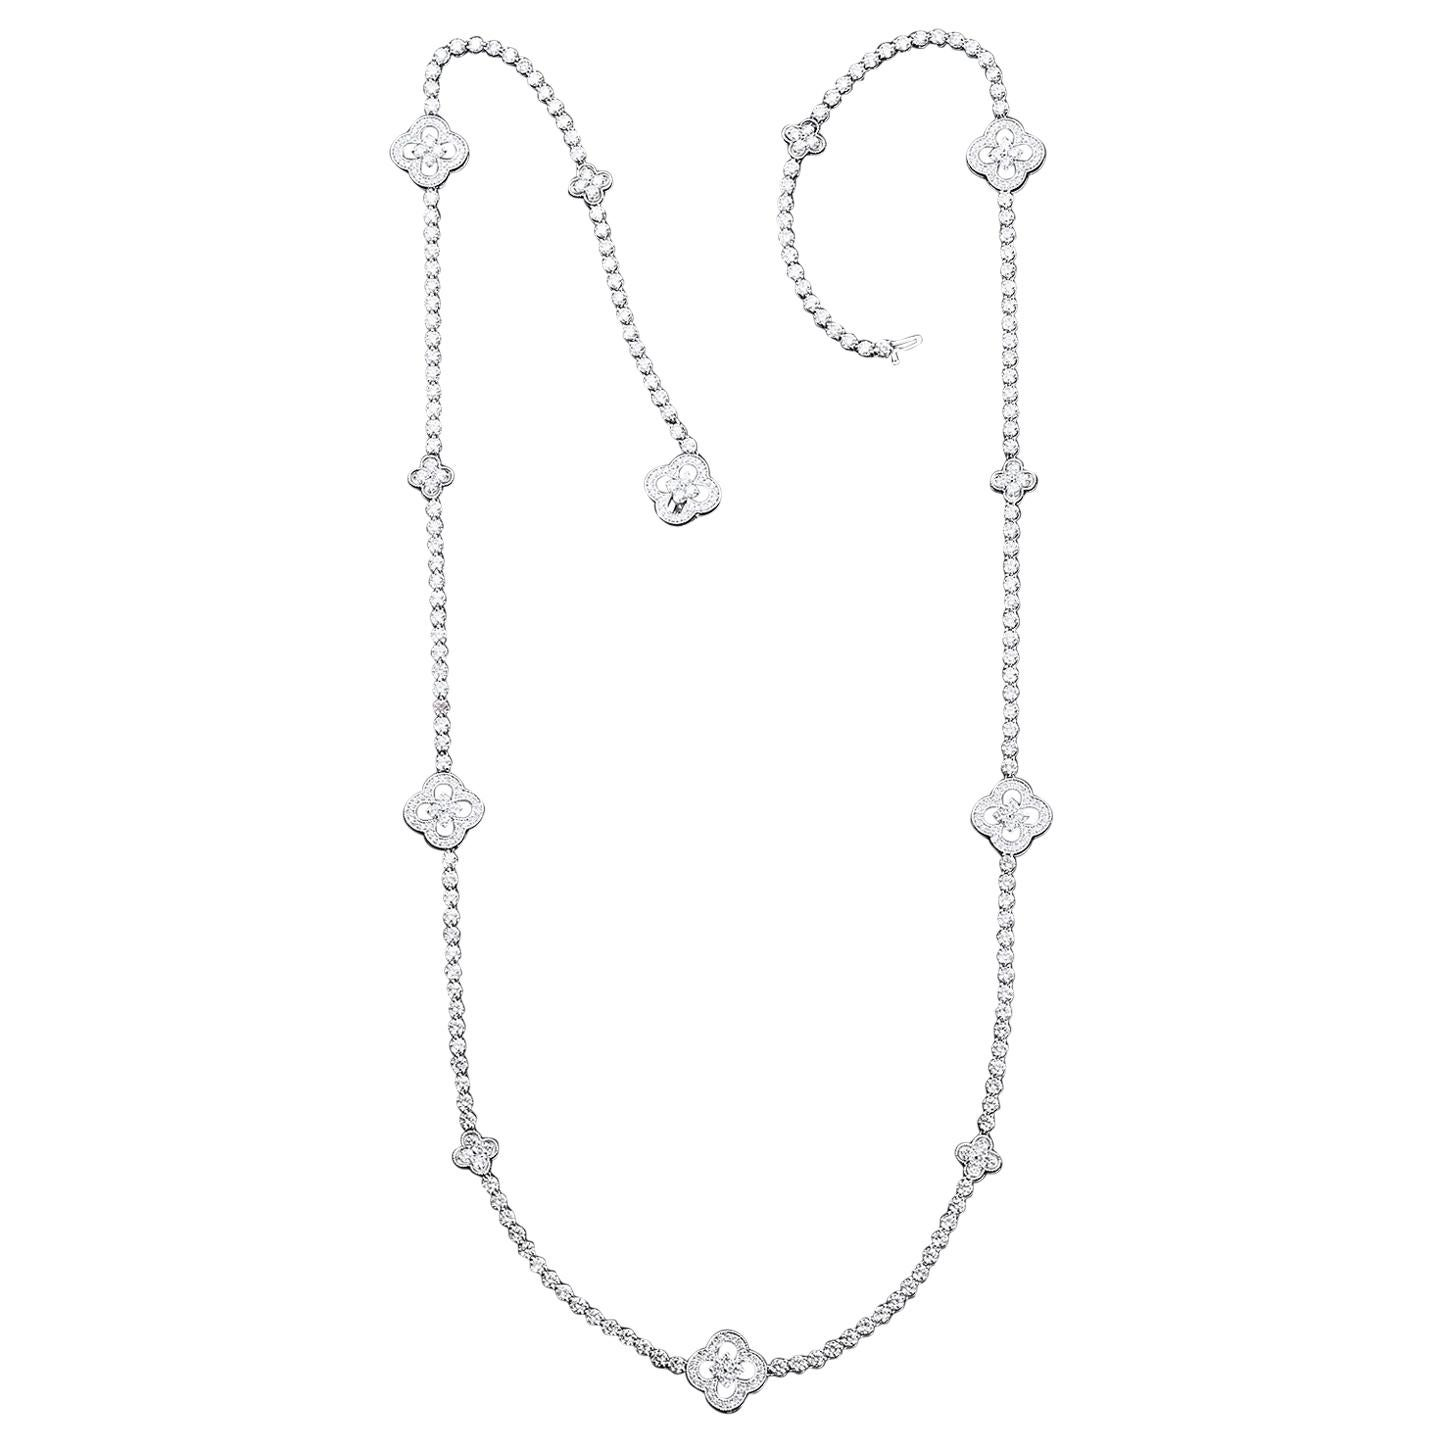 33 Carat Opera Rope Diamond Necklace